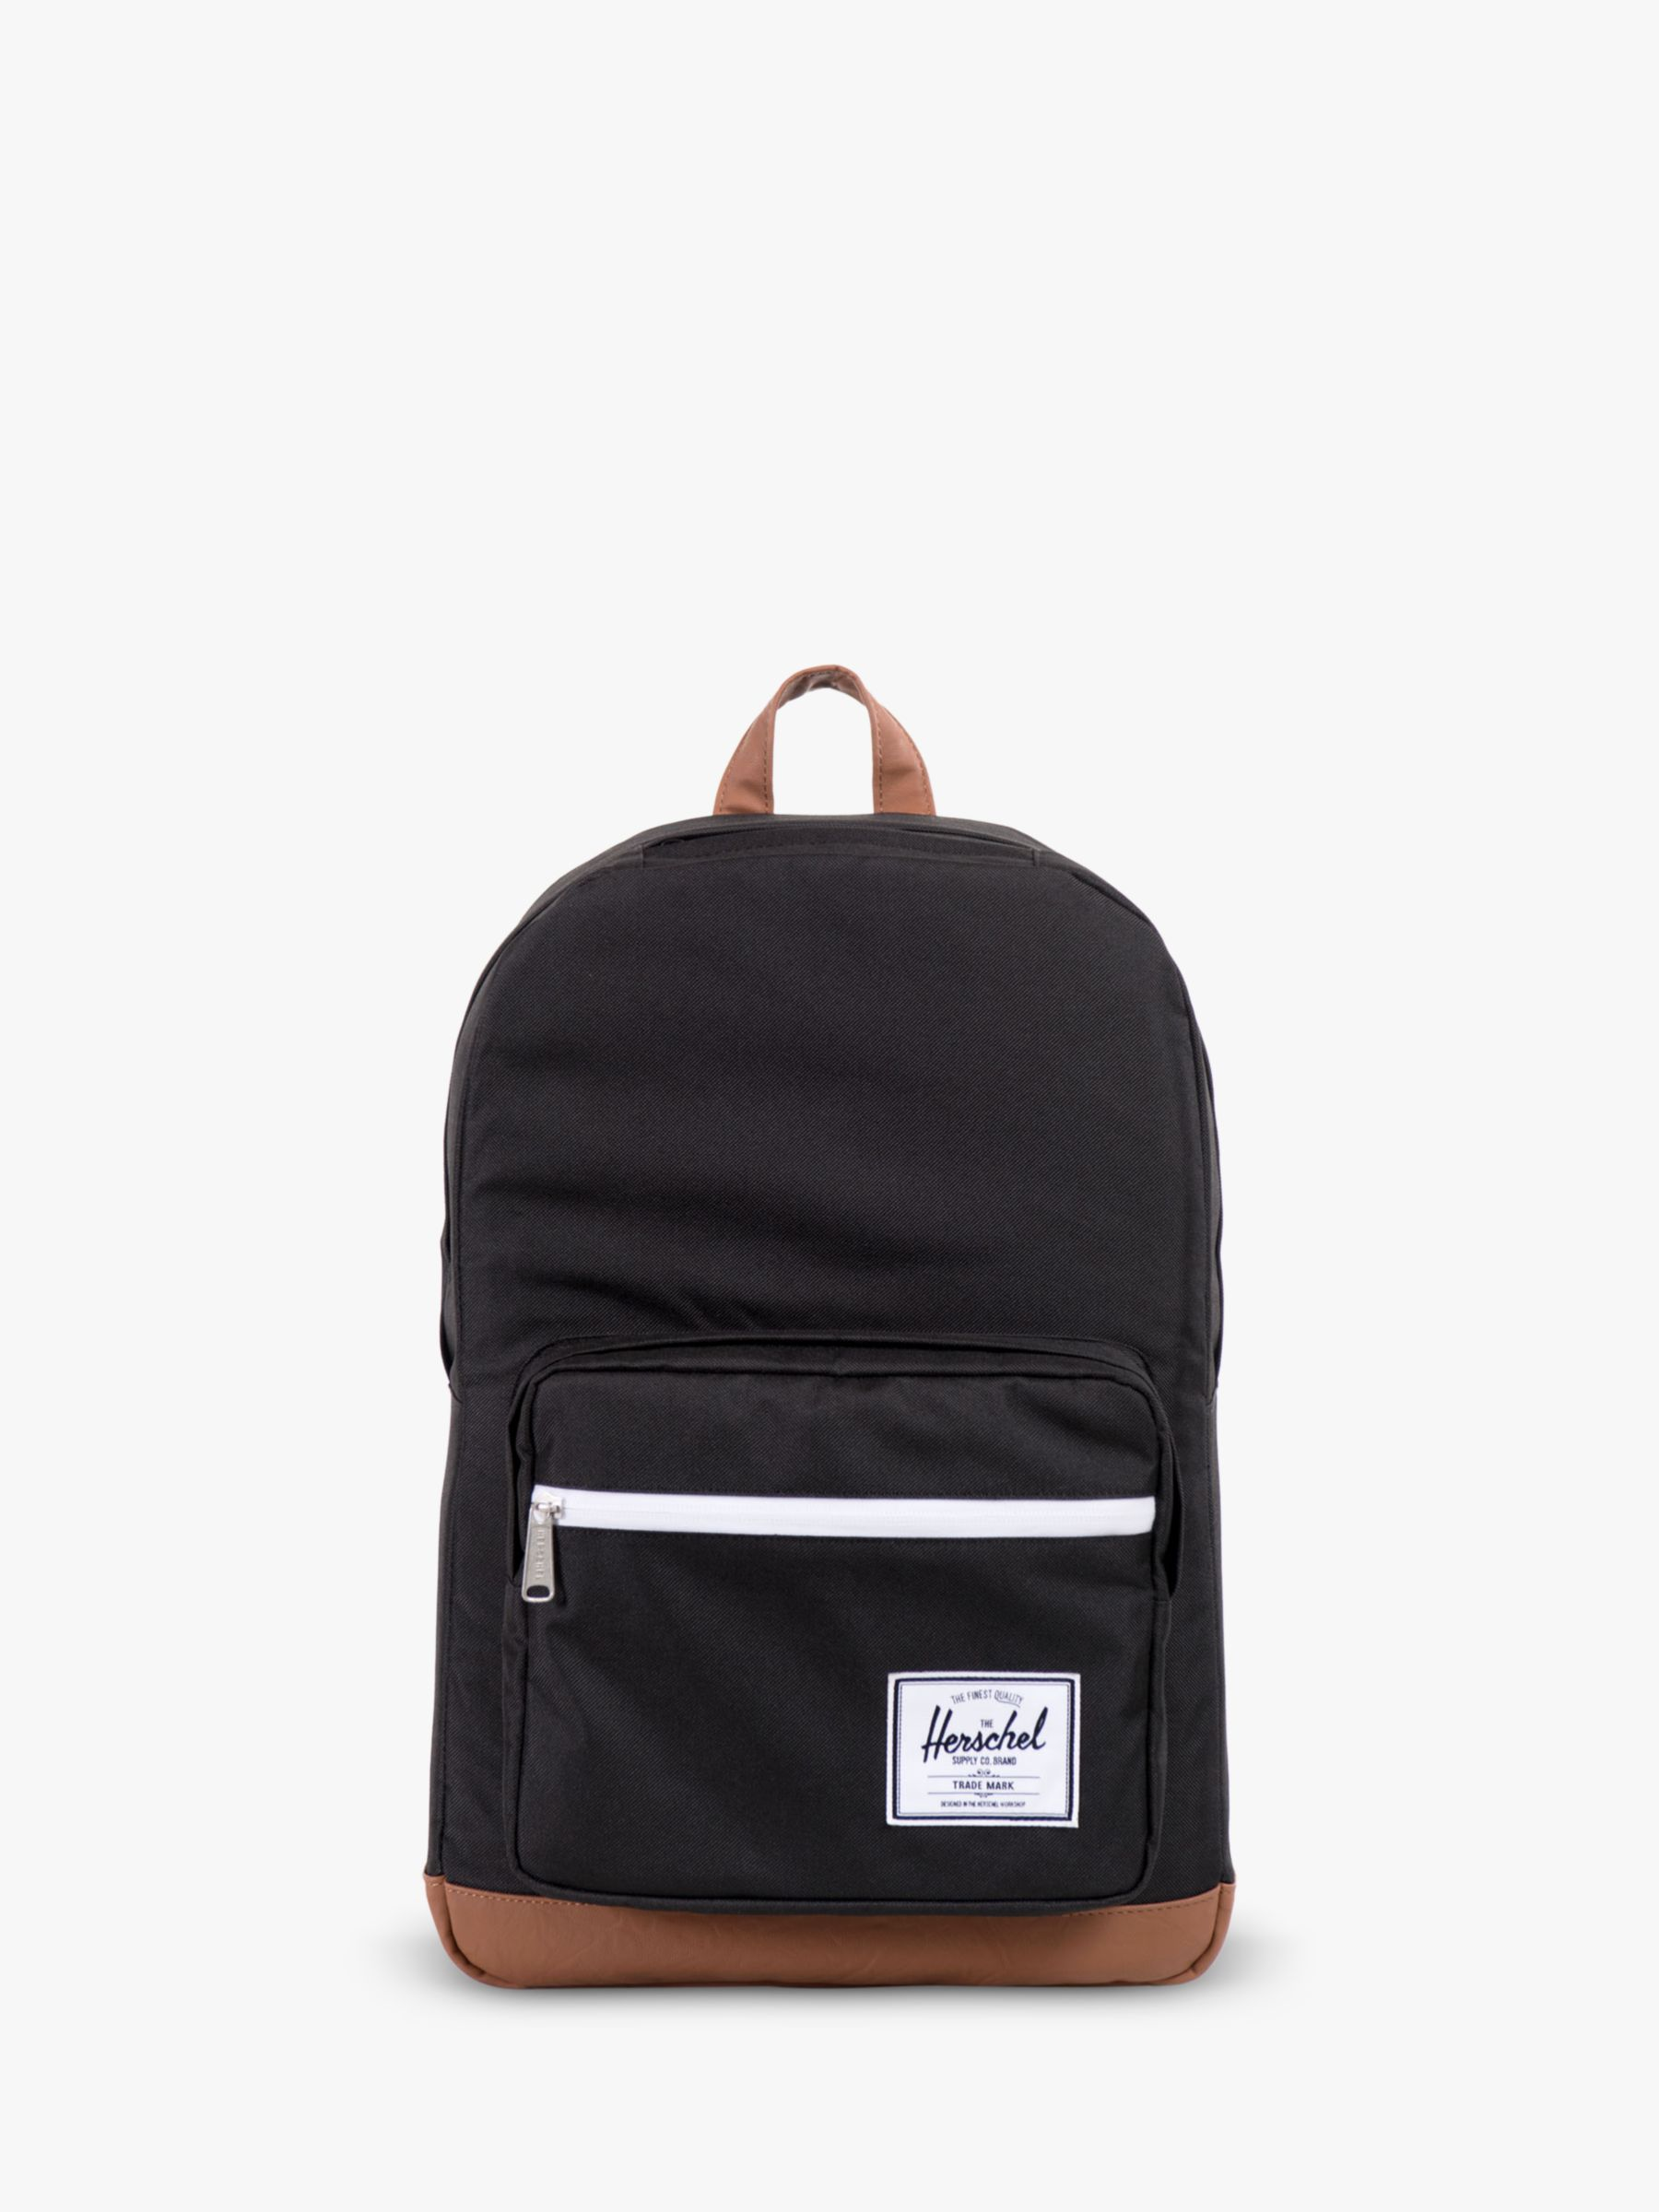 Herschel Supply Co. Herschel Supply Co. Pop Quiz Backpack, Black